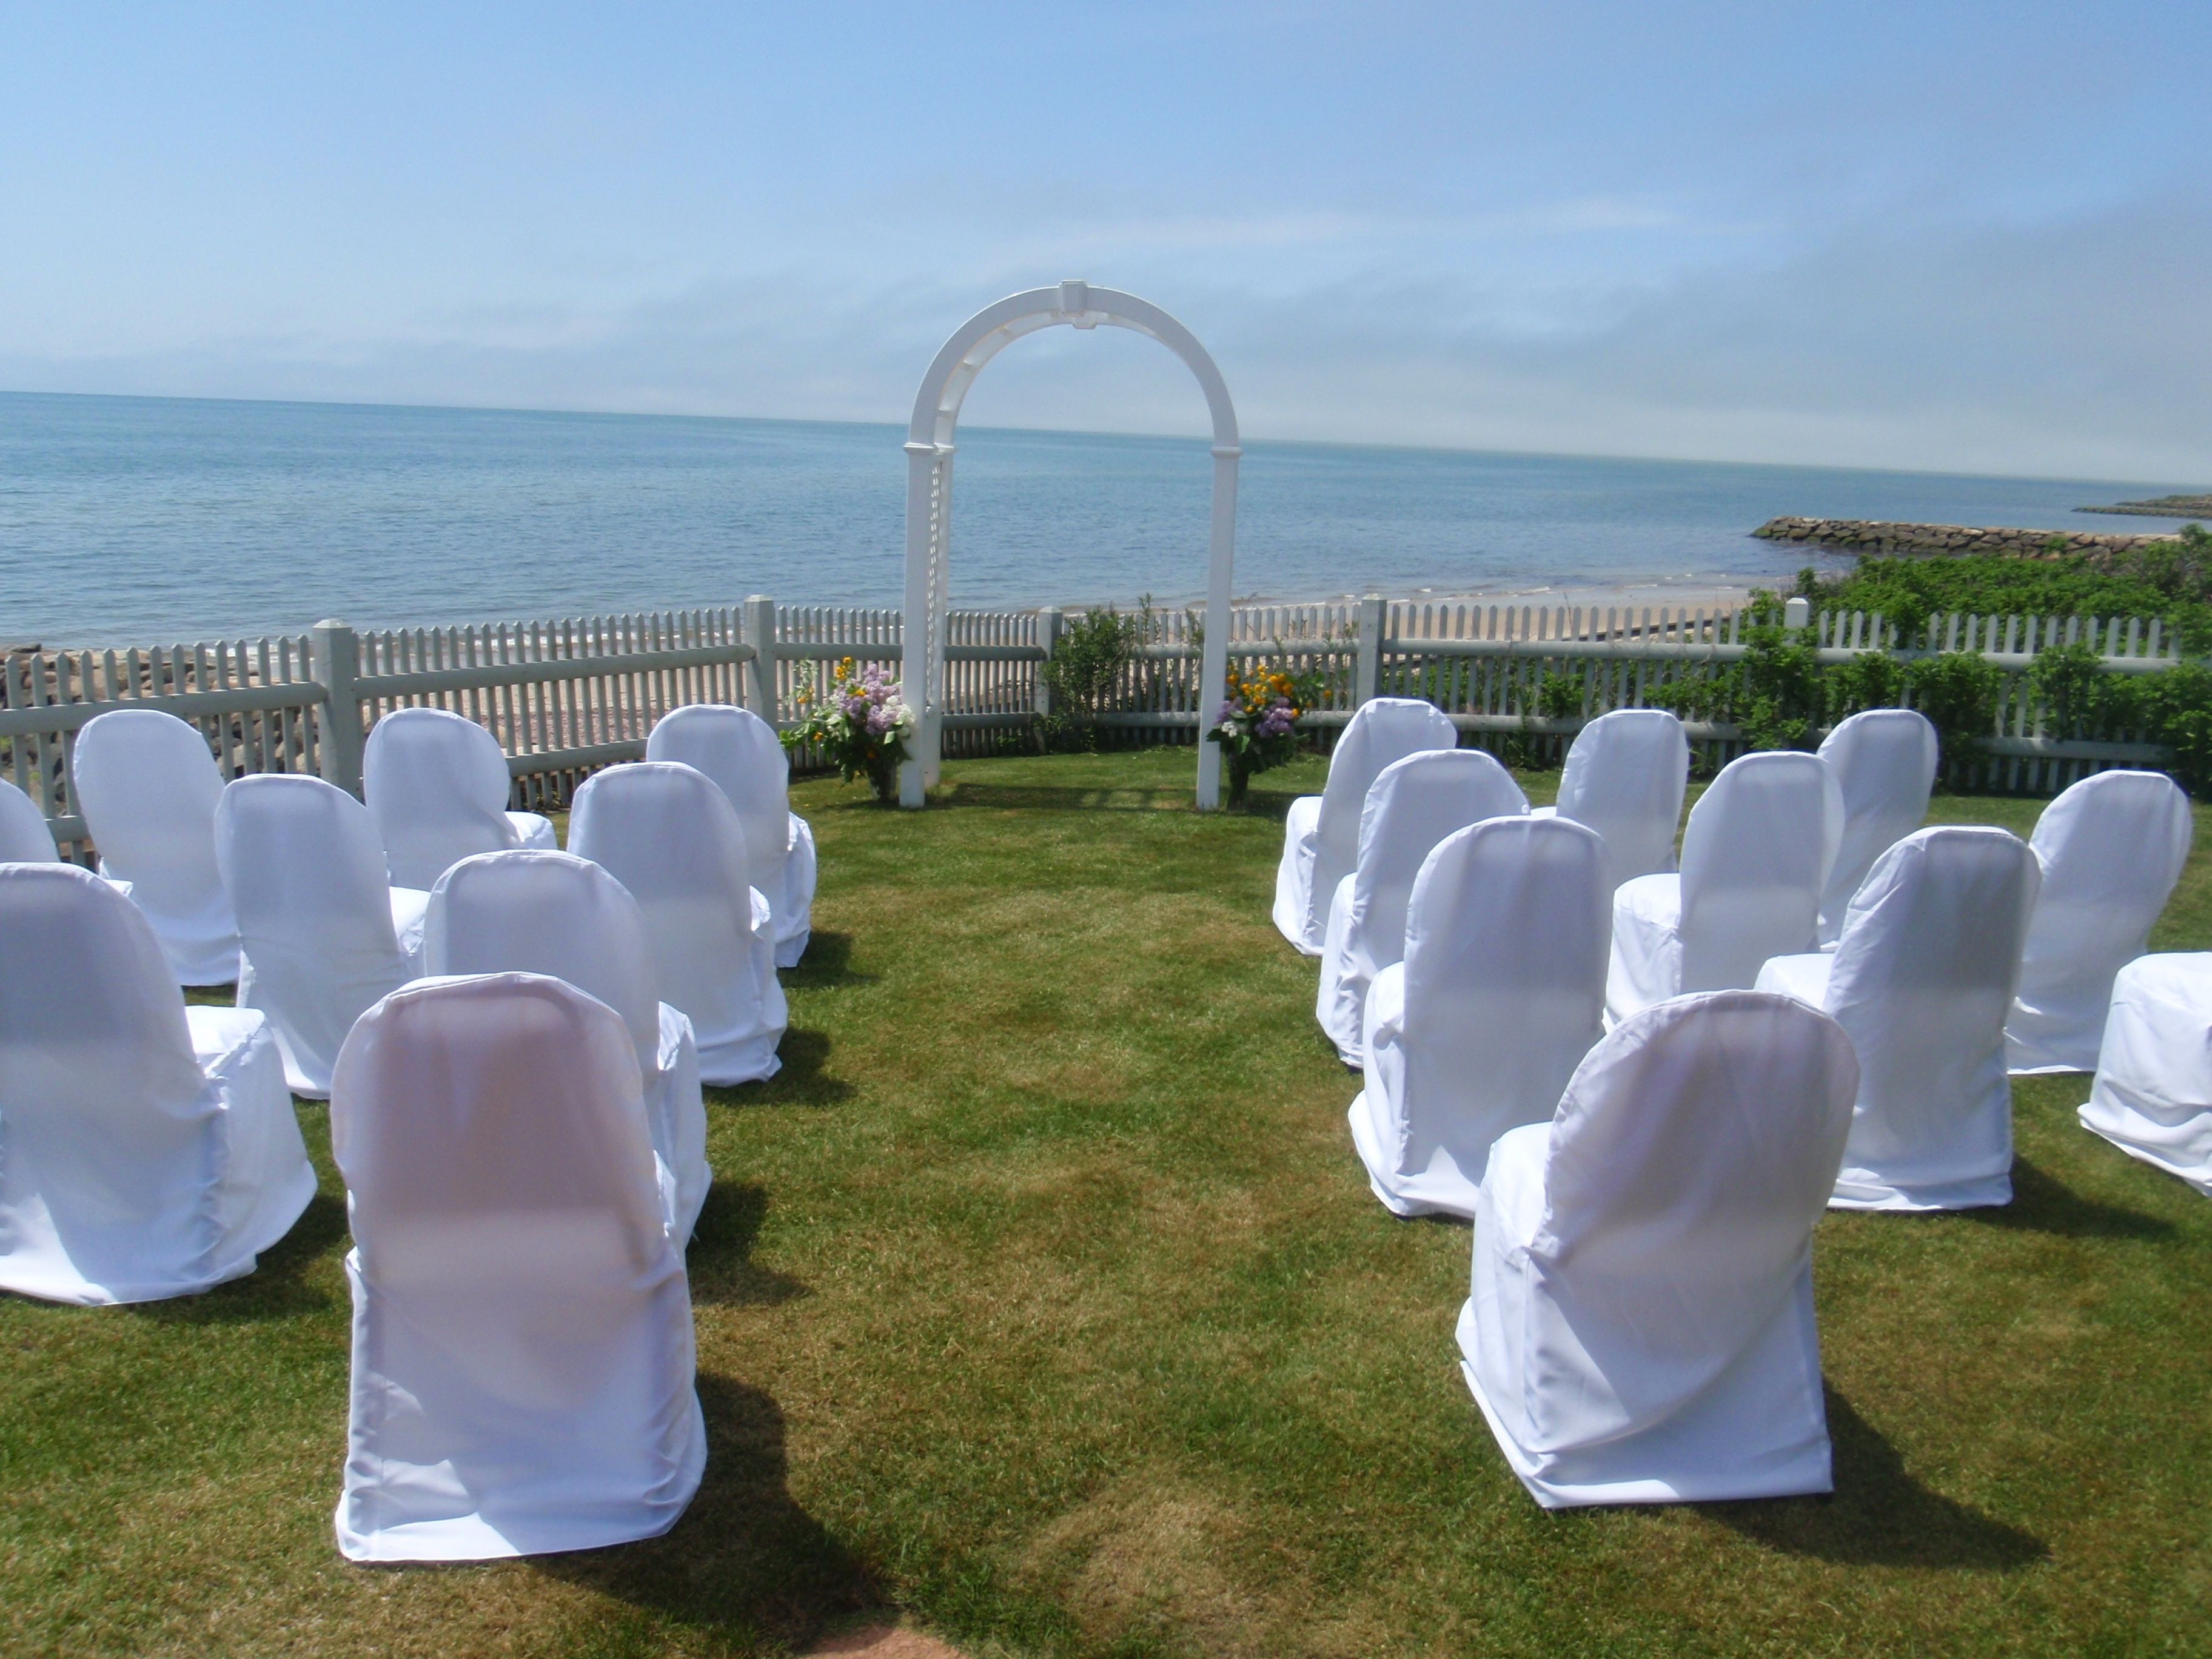 The Corsair And Cross Rip Weddings Events Cape Cod Wedding Locations Ceremonies Receptions Dennis Wedding Locations Cape Cod Hotels Cape Cod Wedding